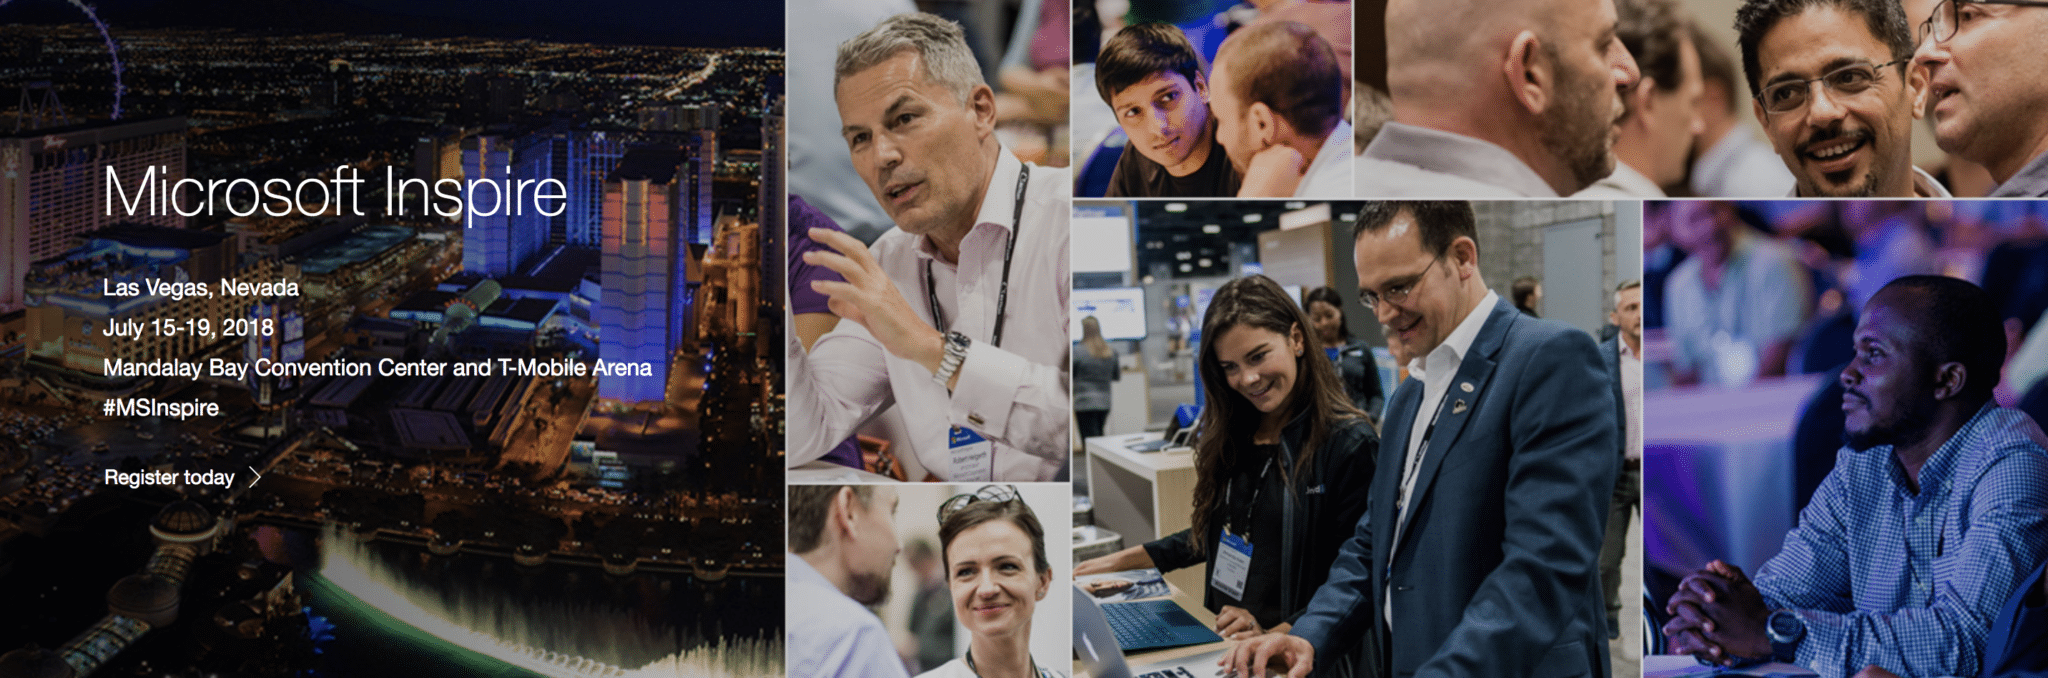 How To Be A Nimble Networker At #MSInspire 2018